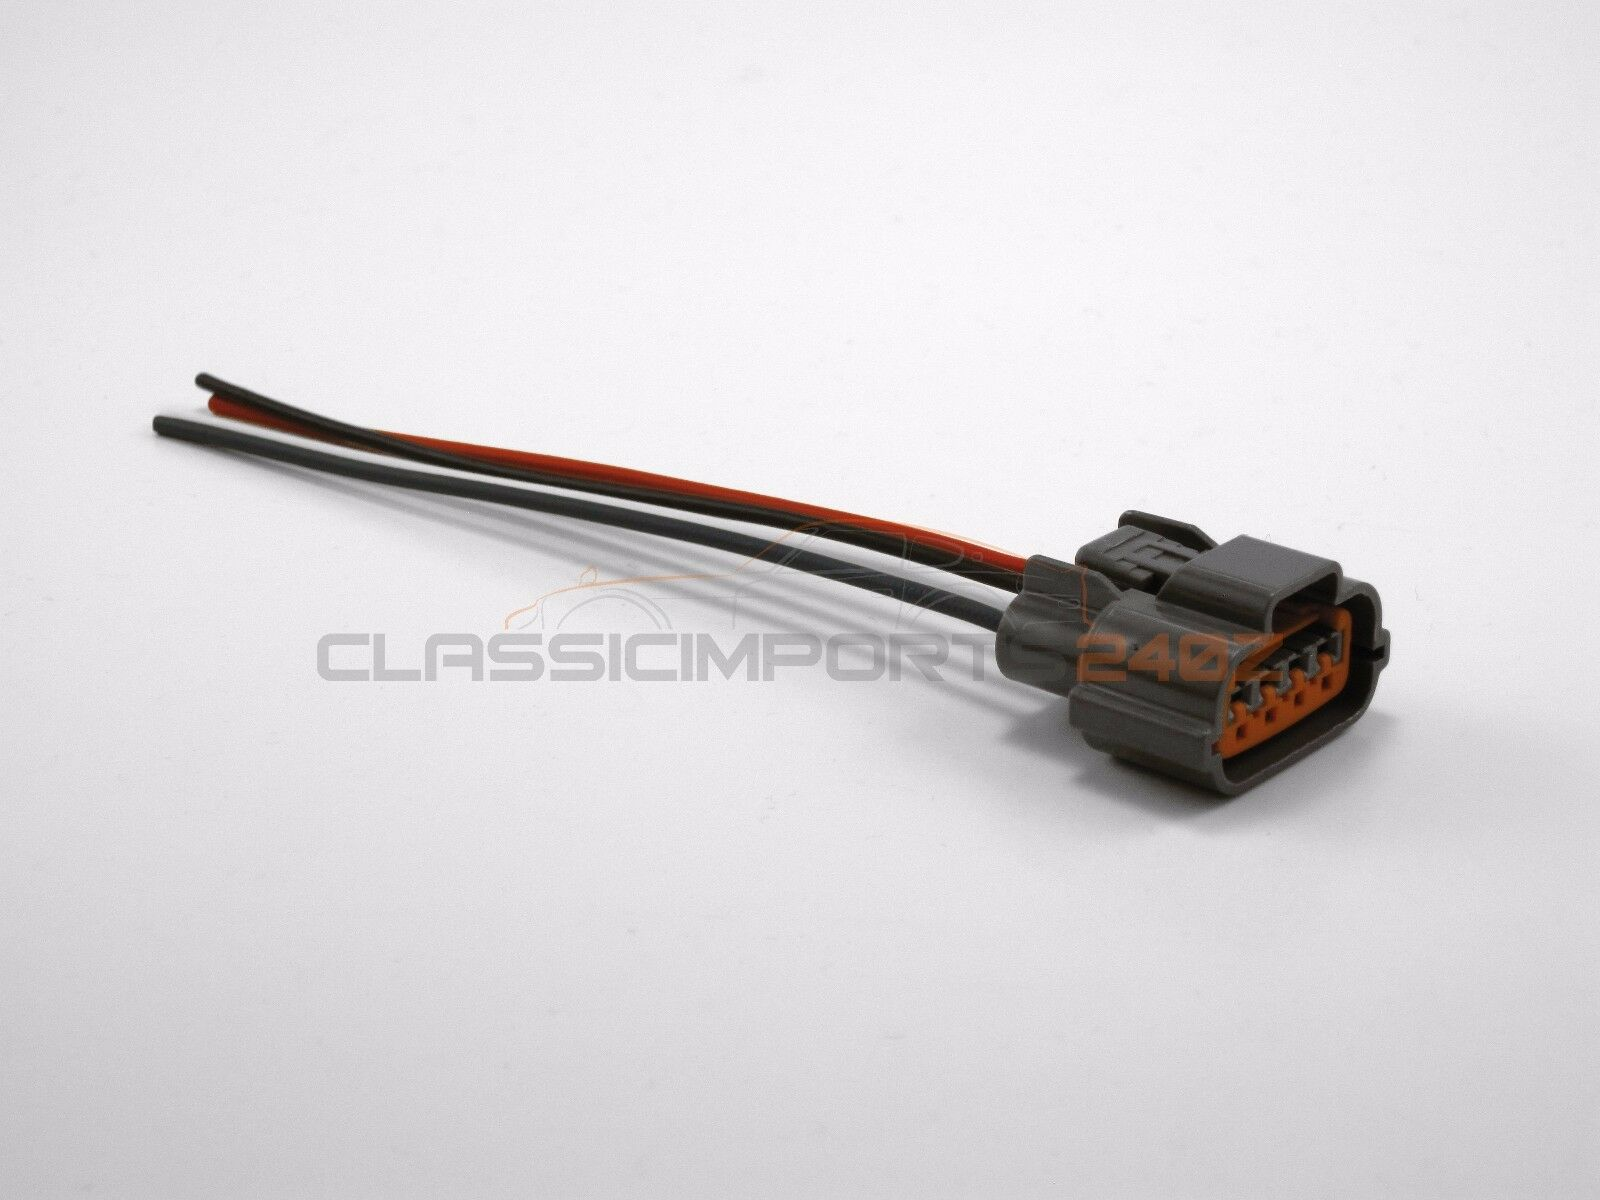 alternator harness connector for nissan maxima murano infiniti i30 i35